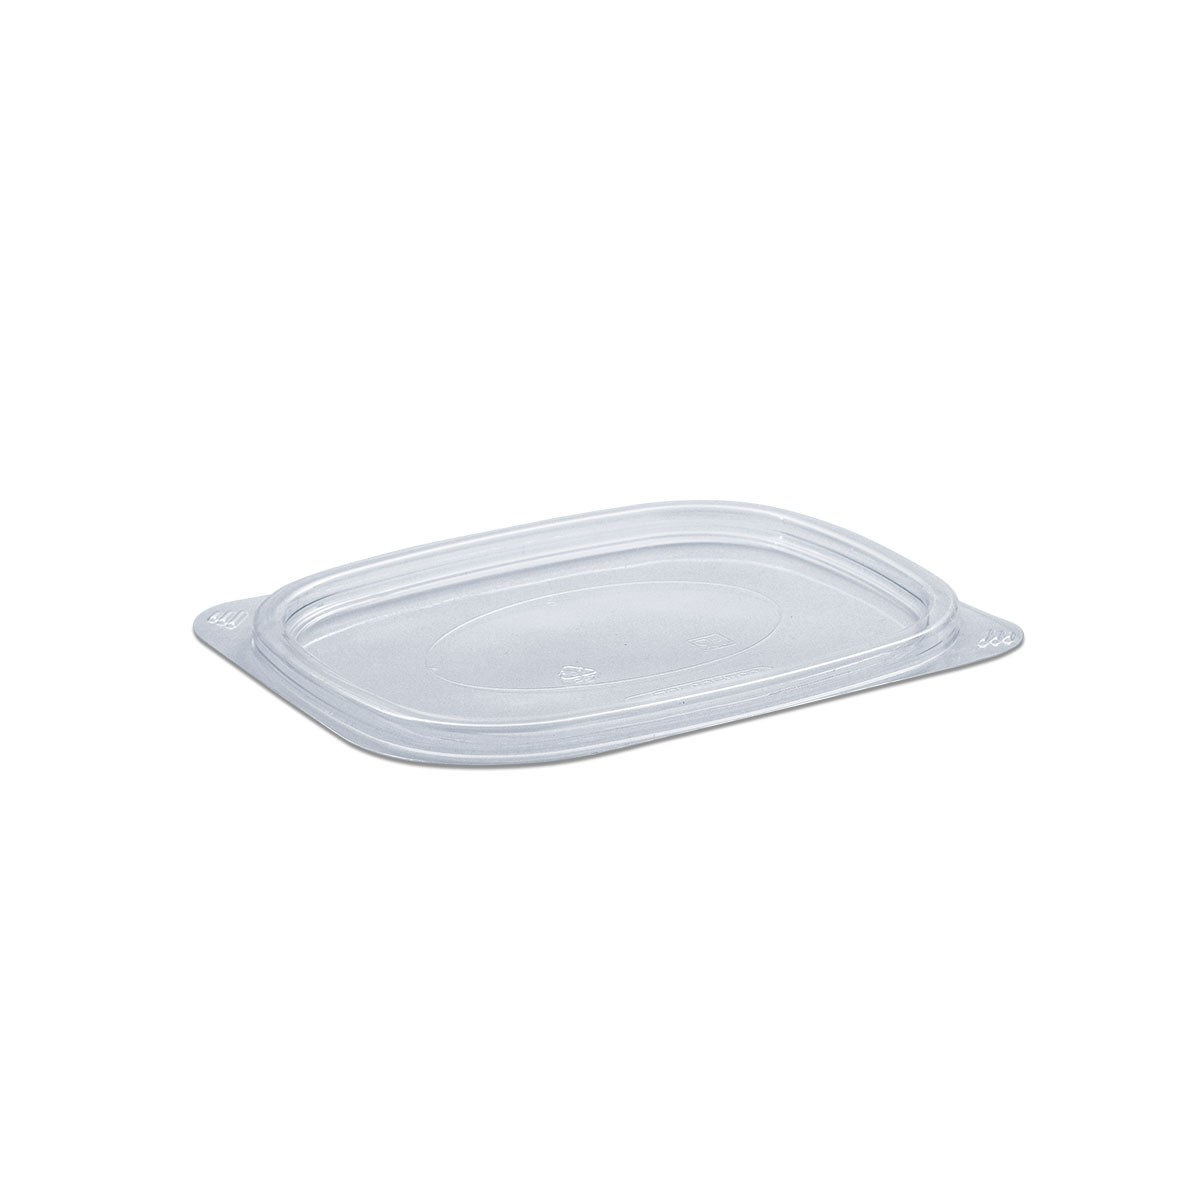 Tutipac Flat Lid for 08/16oz Cold Multipurpose Containers PET   600pcs